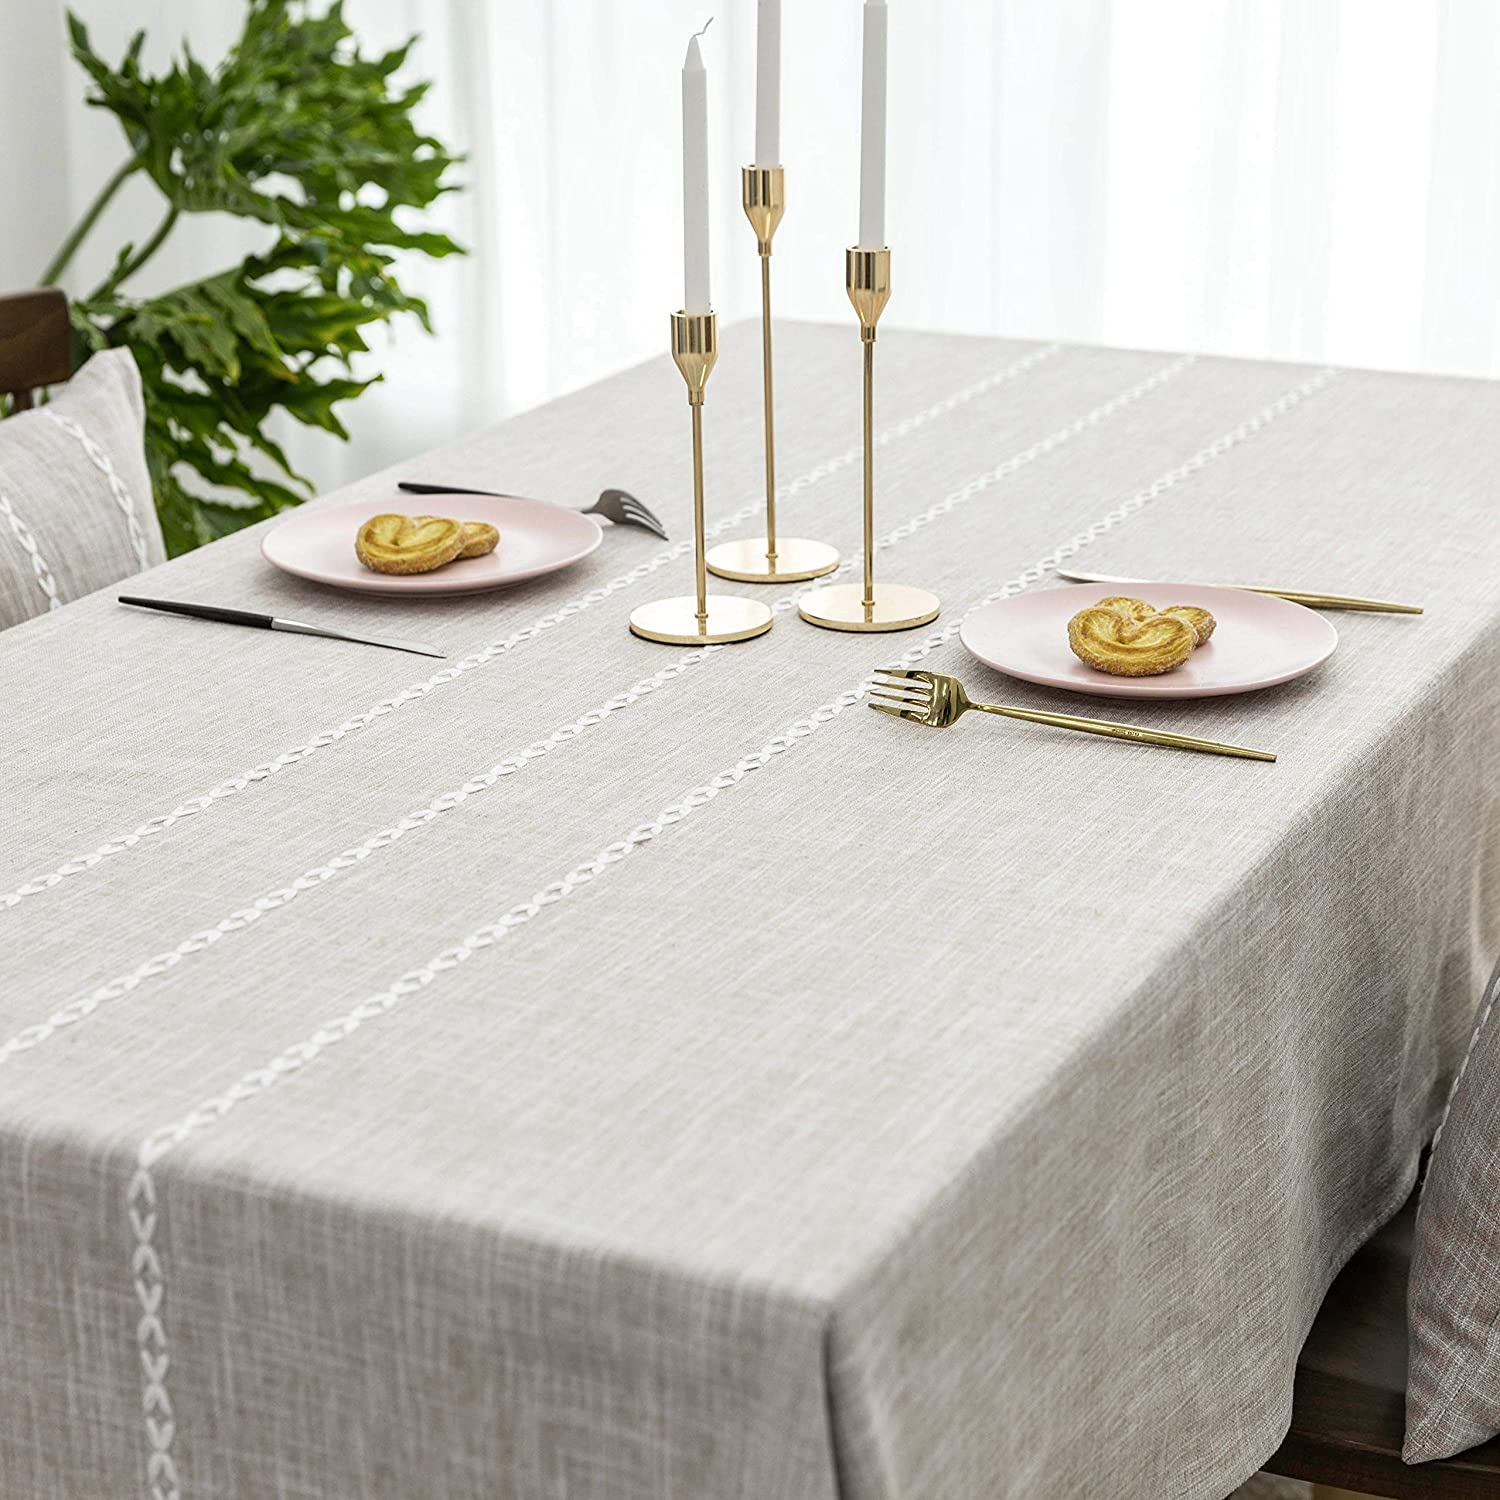 Home Brilliant Tablecloth Rectangle Lattice Table f Max 64% OFF Cover Clearance SALE Limited time Stripe